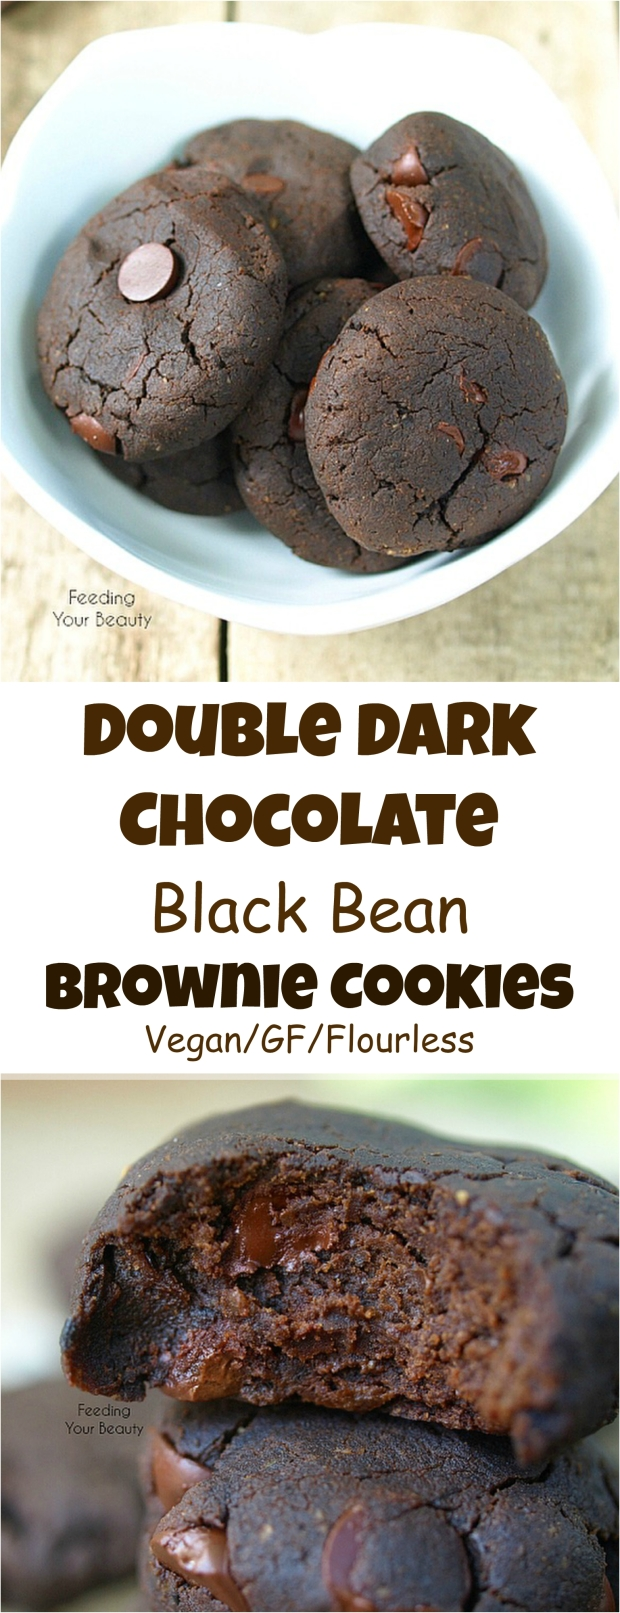 Double Dark Chocolate Black Bean Brownie Cookies - Vegan, Gluten Free, Flourless, Oil Free